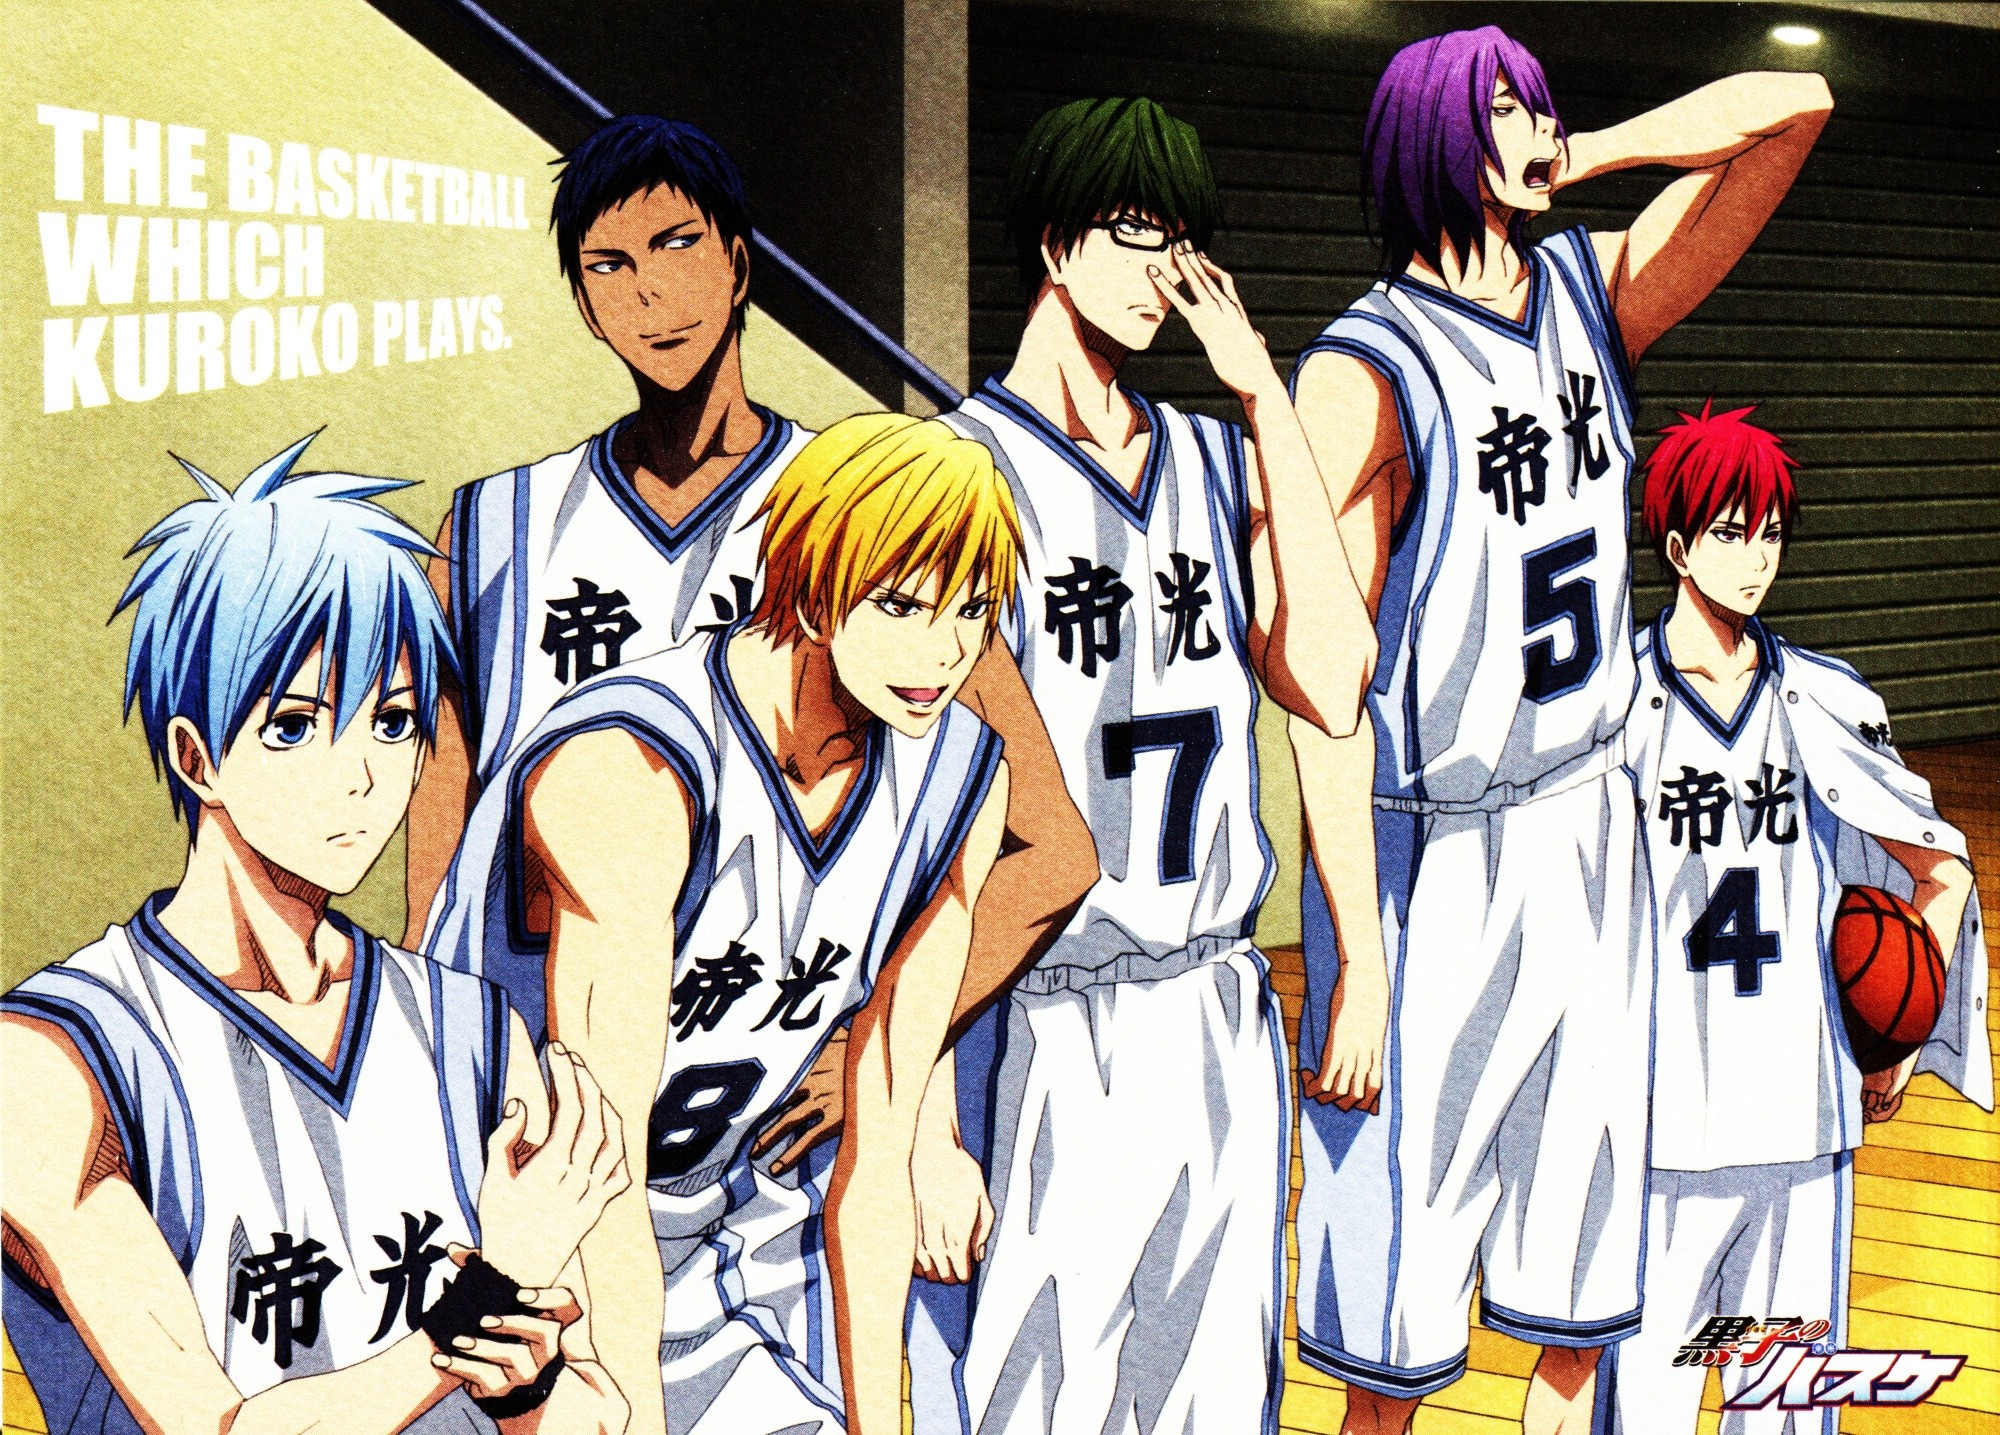 2000x1435 Kuroko's Basketball Characters 13 Wide Wallpaper. Kuroko's Basketball  Characters 13 Wide Wallpaper